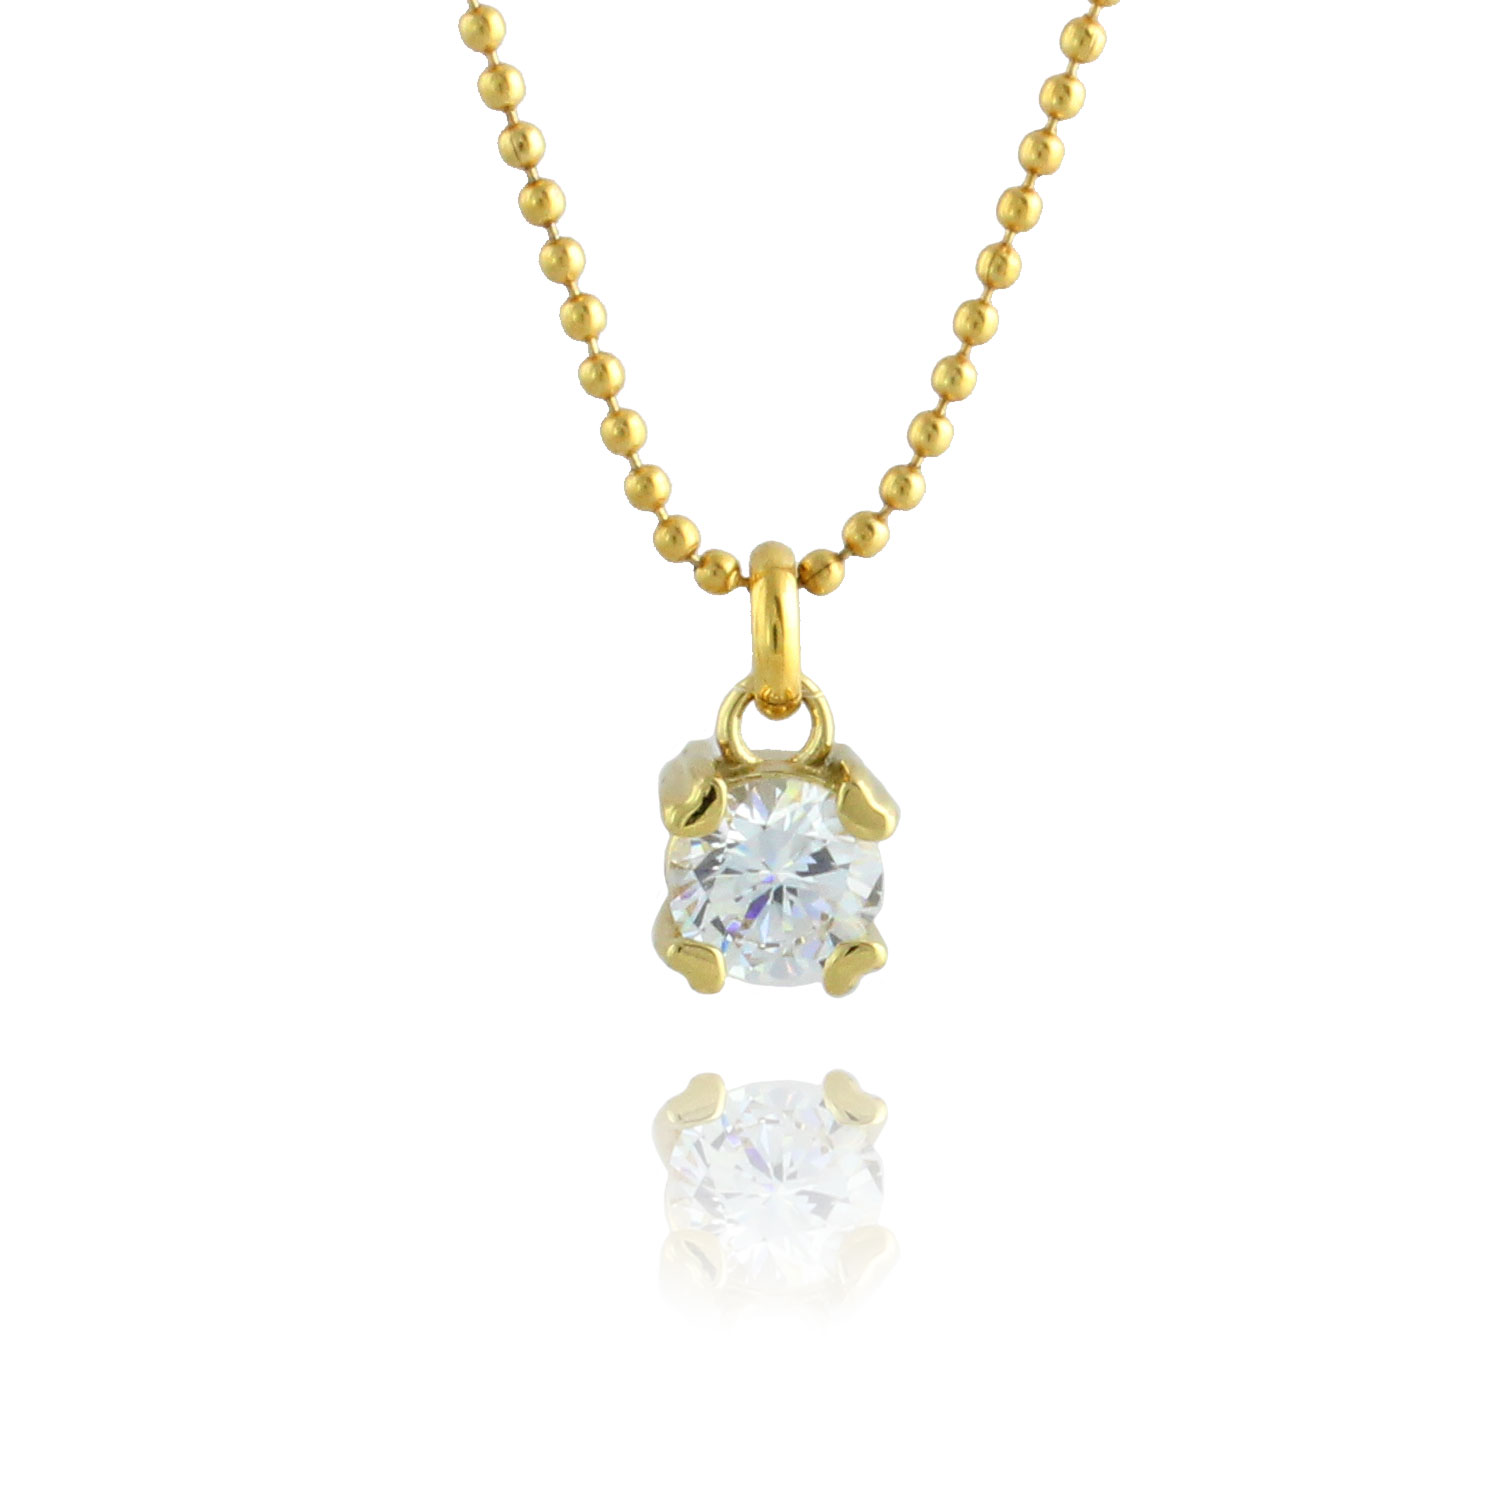 Tiny Hearts Gold Plated & White Cubic Zirconia Simple Pendant Necklace - 18 inch chain